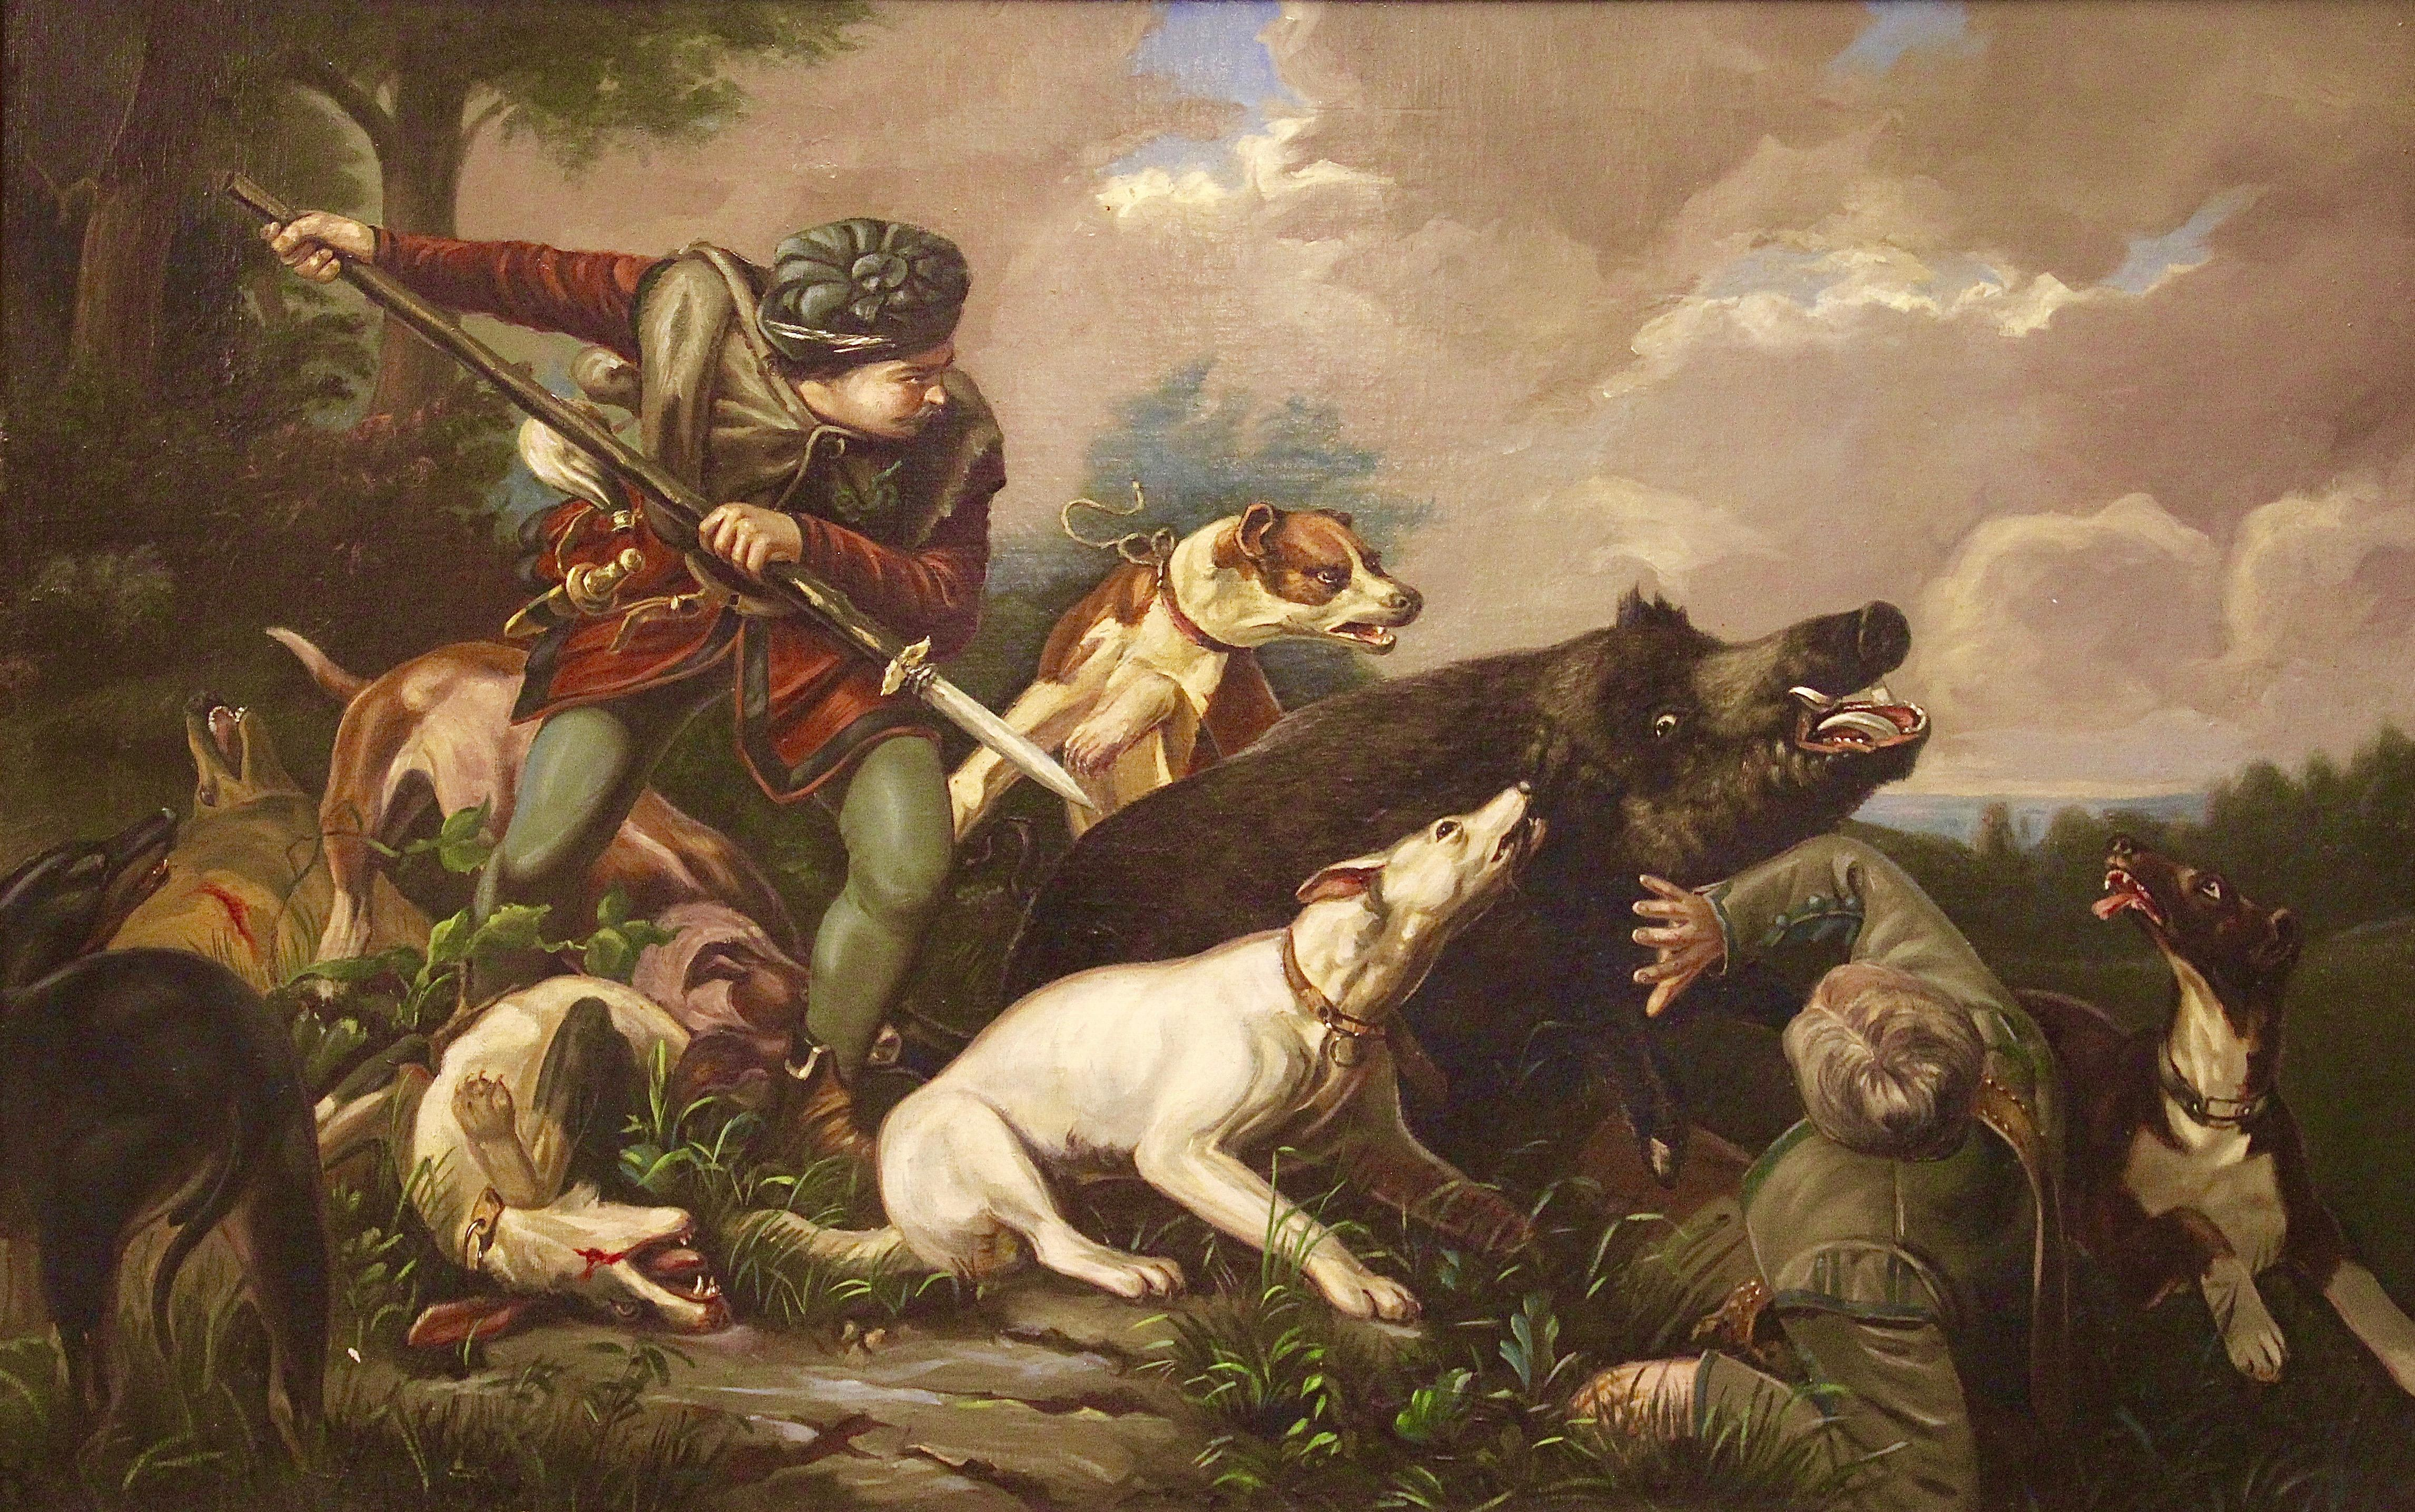 Figurative Painting, Large, Oil on Canvas. 19th Century. Hunting scene.